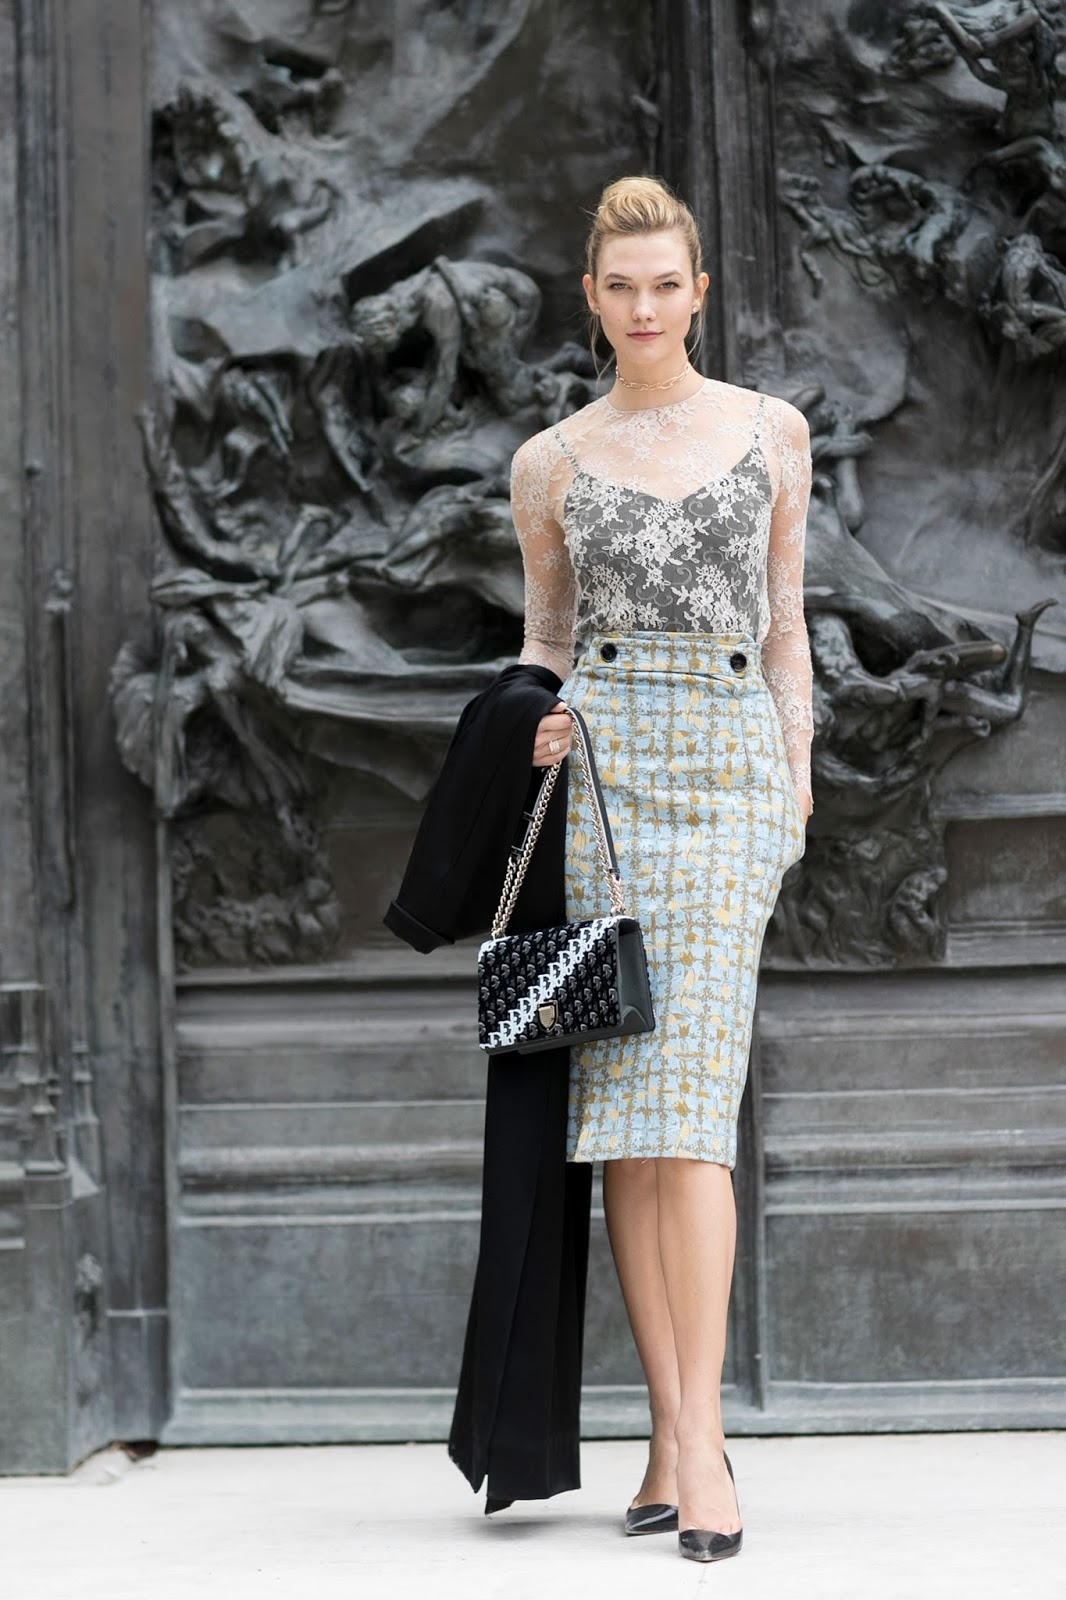 Karlie Kloss Arrives at the Dior Show in Paris